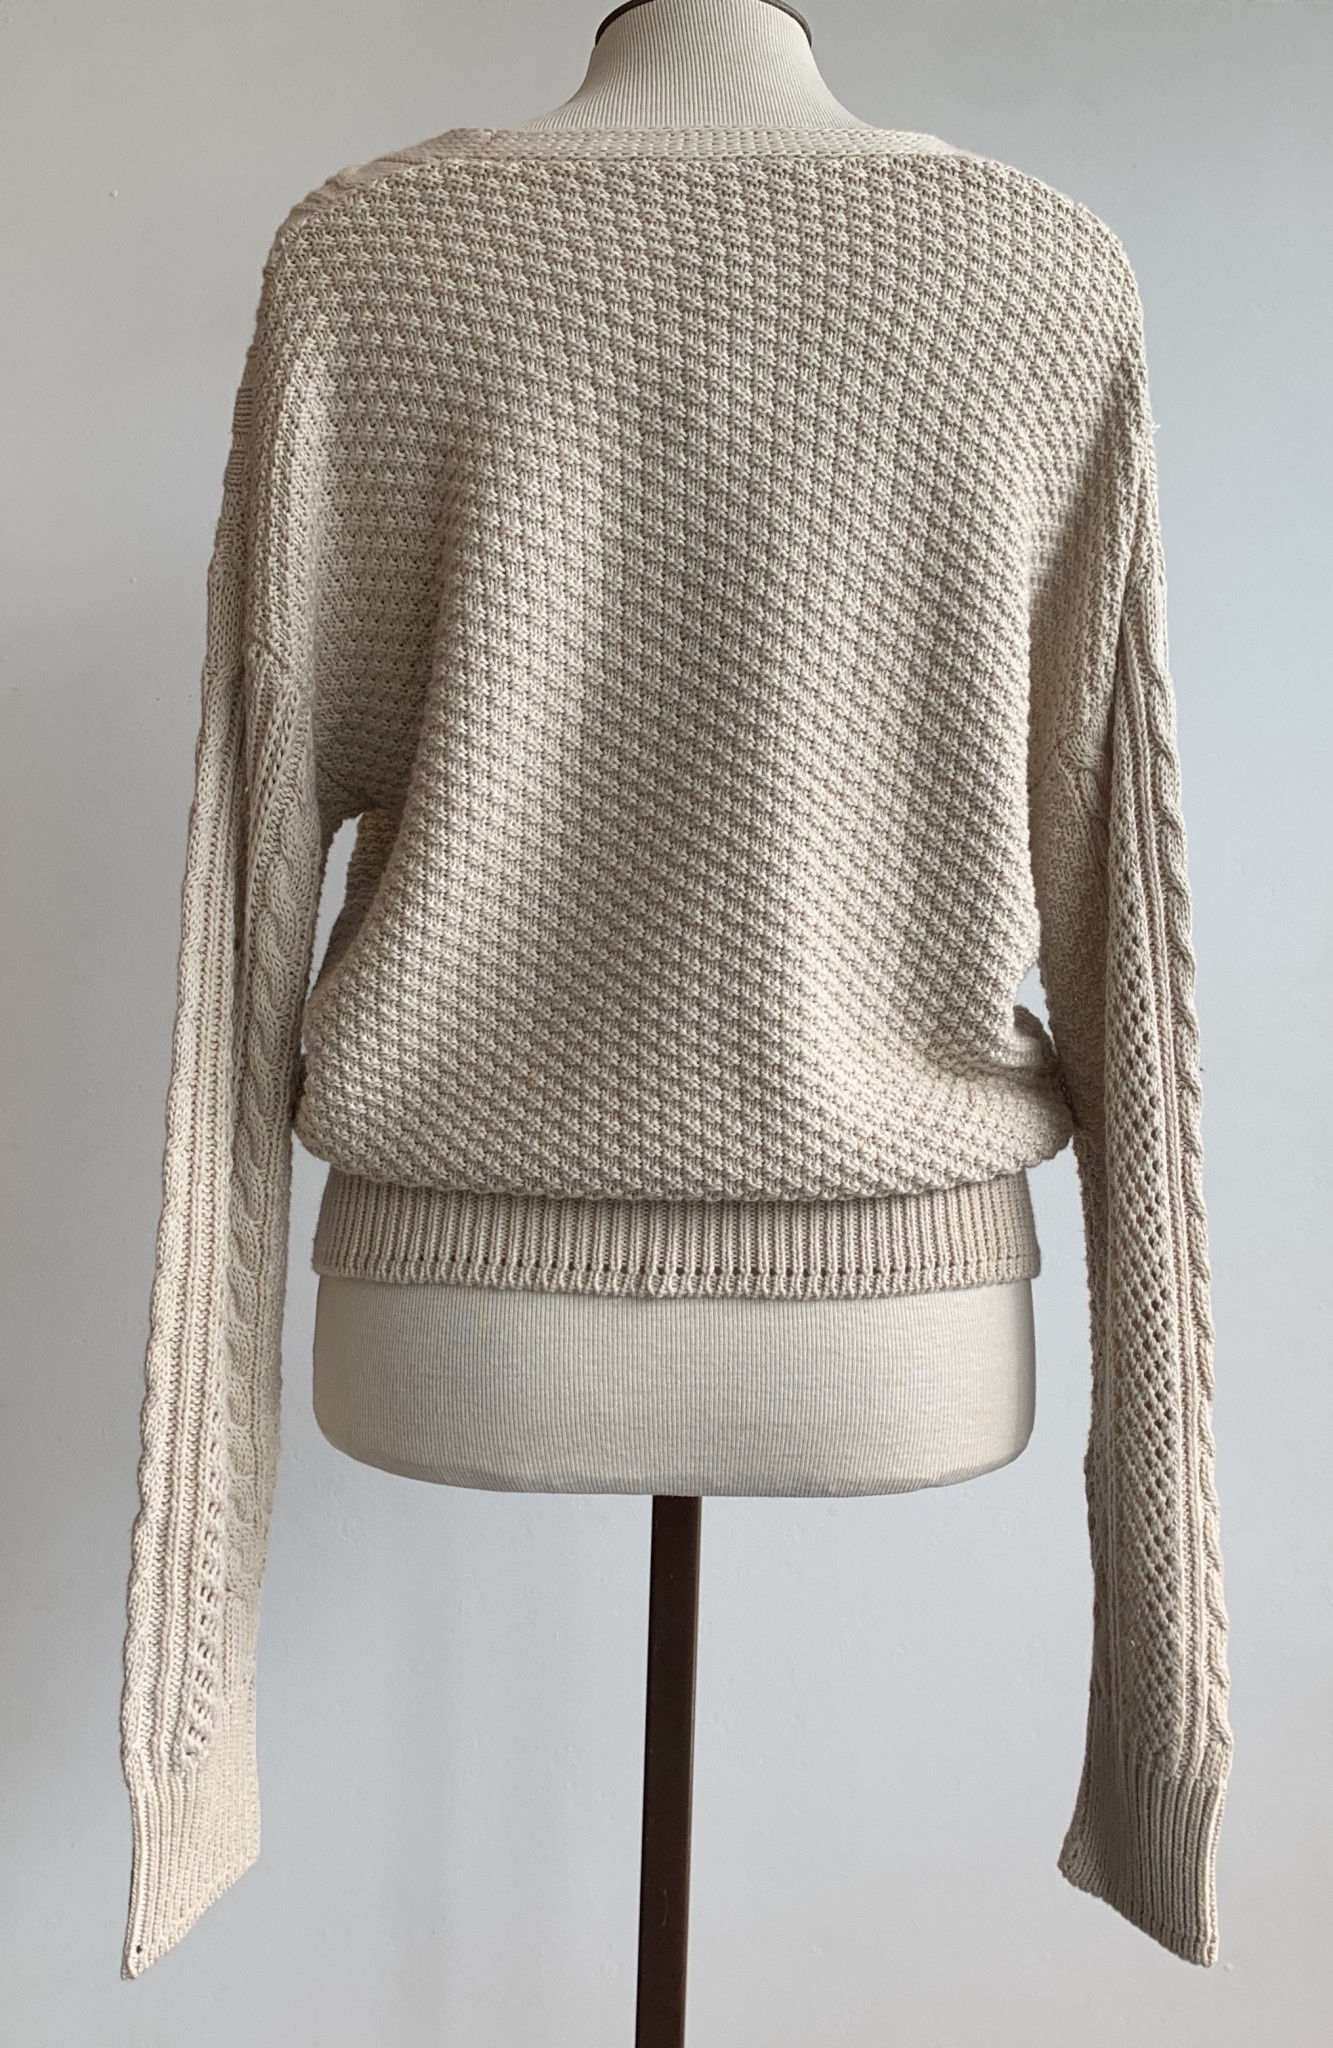 Autumn Cashmere Cable Grandpa Cardigan